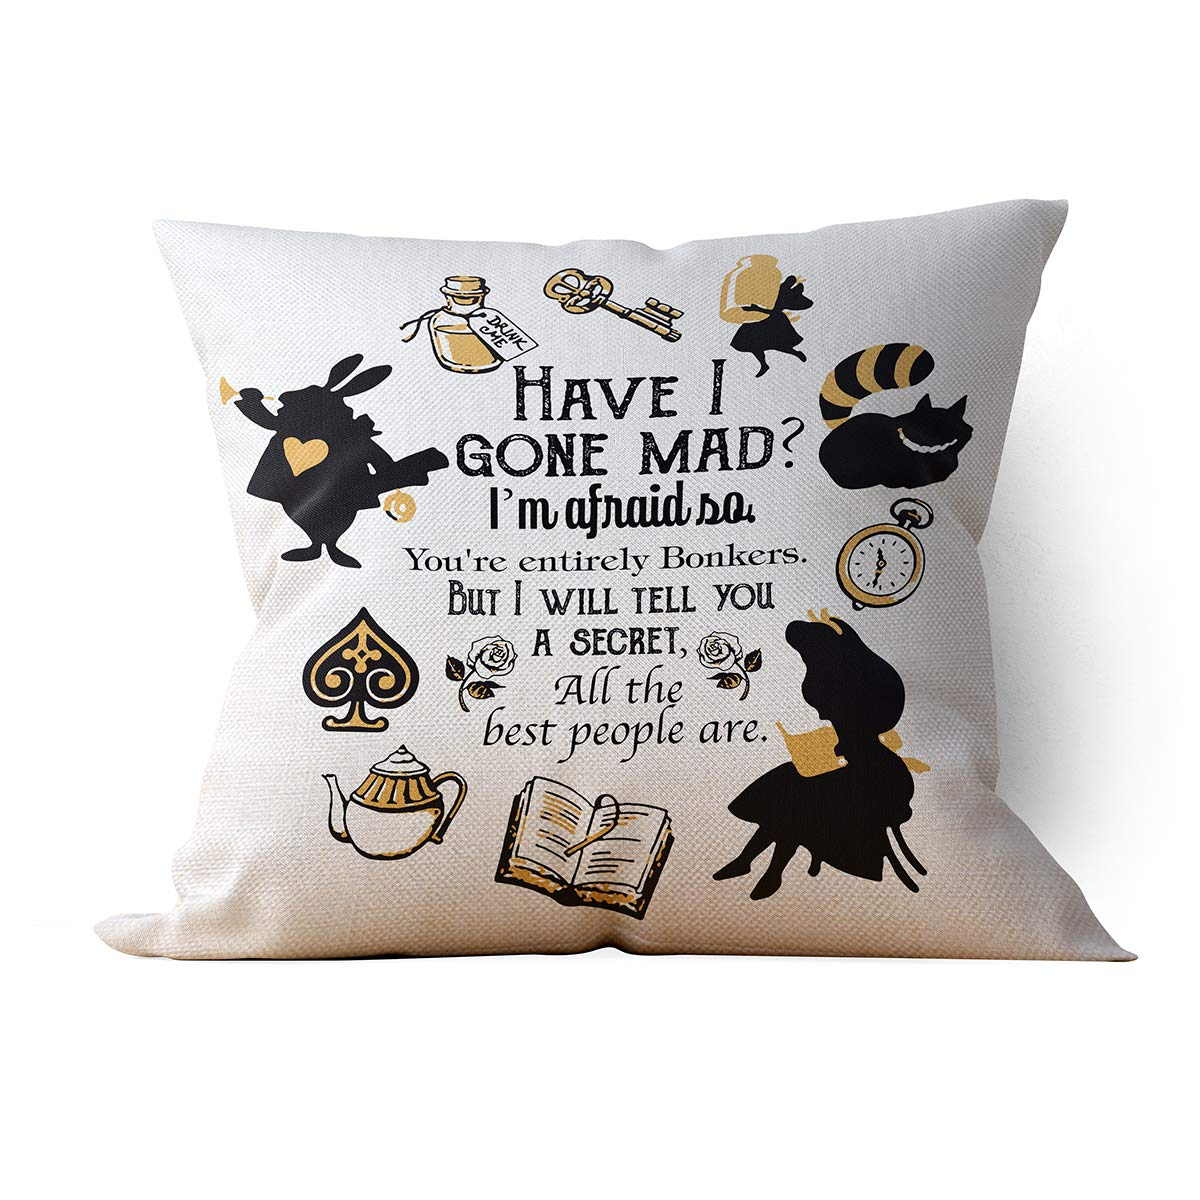 Chillake Vintage Alice In Wonderland Throw Pillow Case Cushion Cover For Sofa Couch Living Room Home Decor Cute Have I Gone Mad Quotes Pillow Case Gifts For Kids Best Friend Teen 18 X 18 Inch Buy